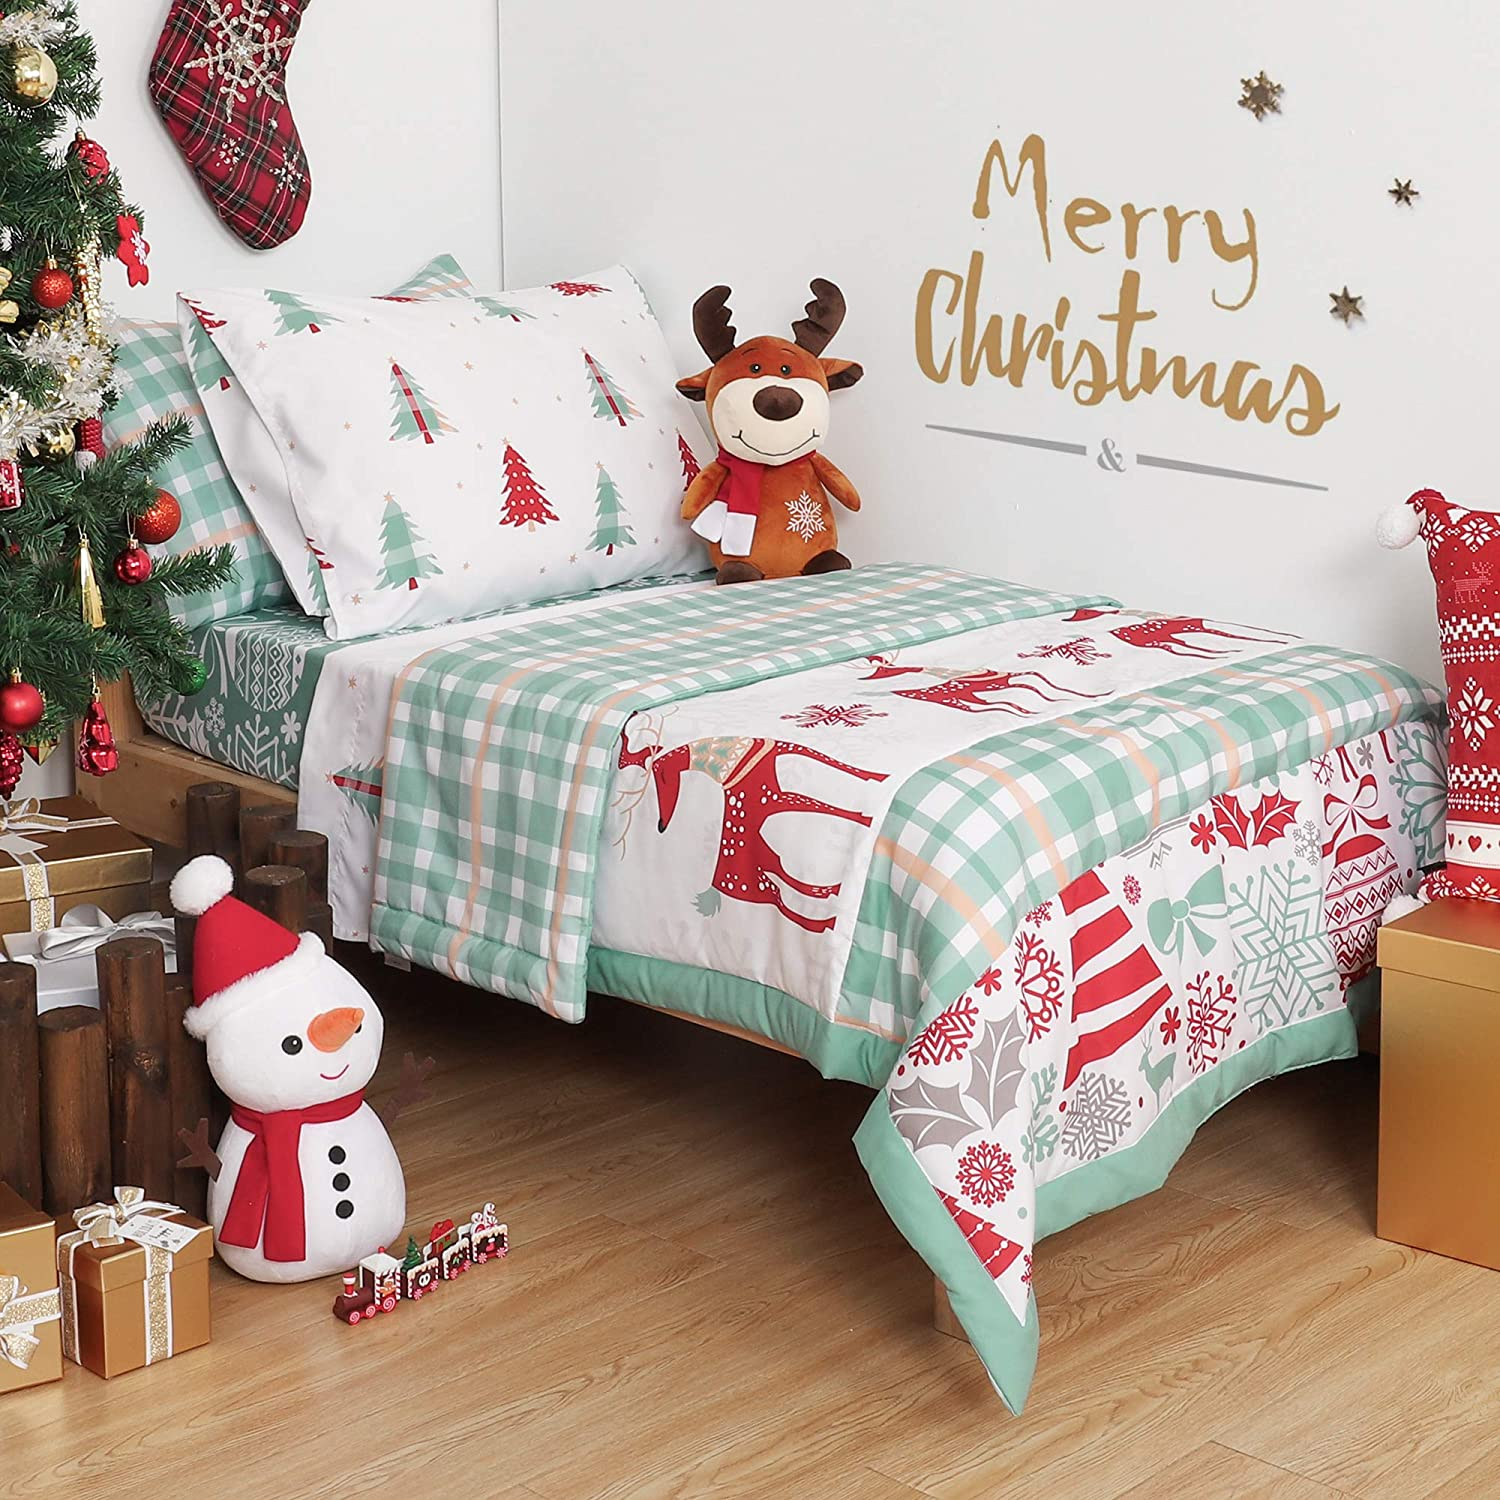 TILLOU Christmas Toddler Bedding Set (Embroidered Quilt, Fitted Sheet, Flat Sheet, Pillowcases) - Microfiber Printed Nursery Bedding for Boys Girls, Merry